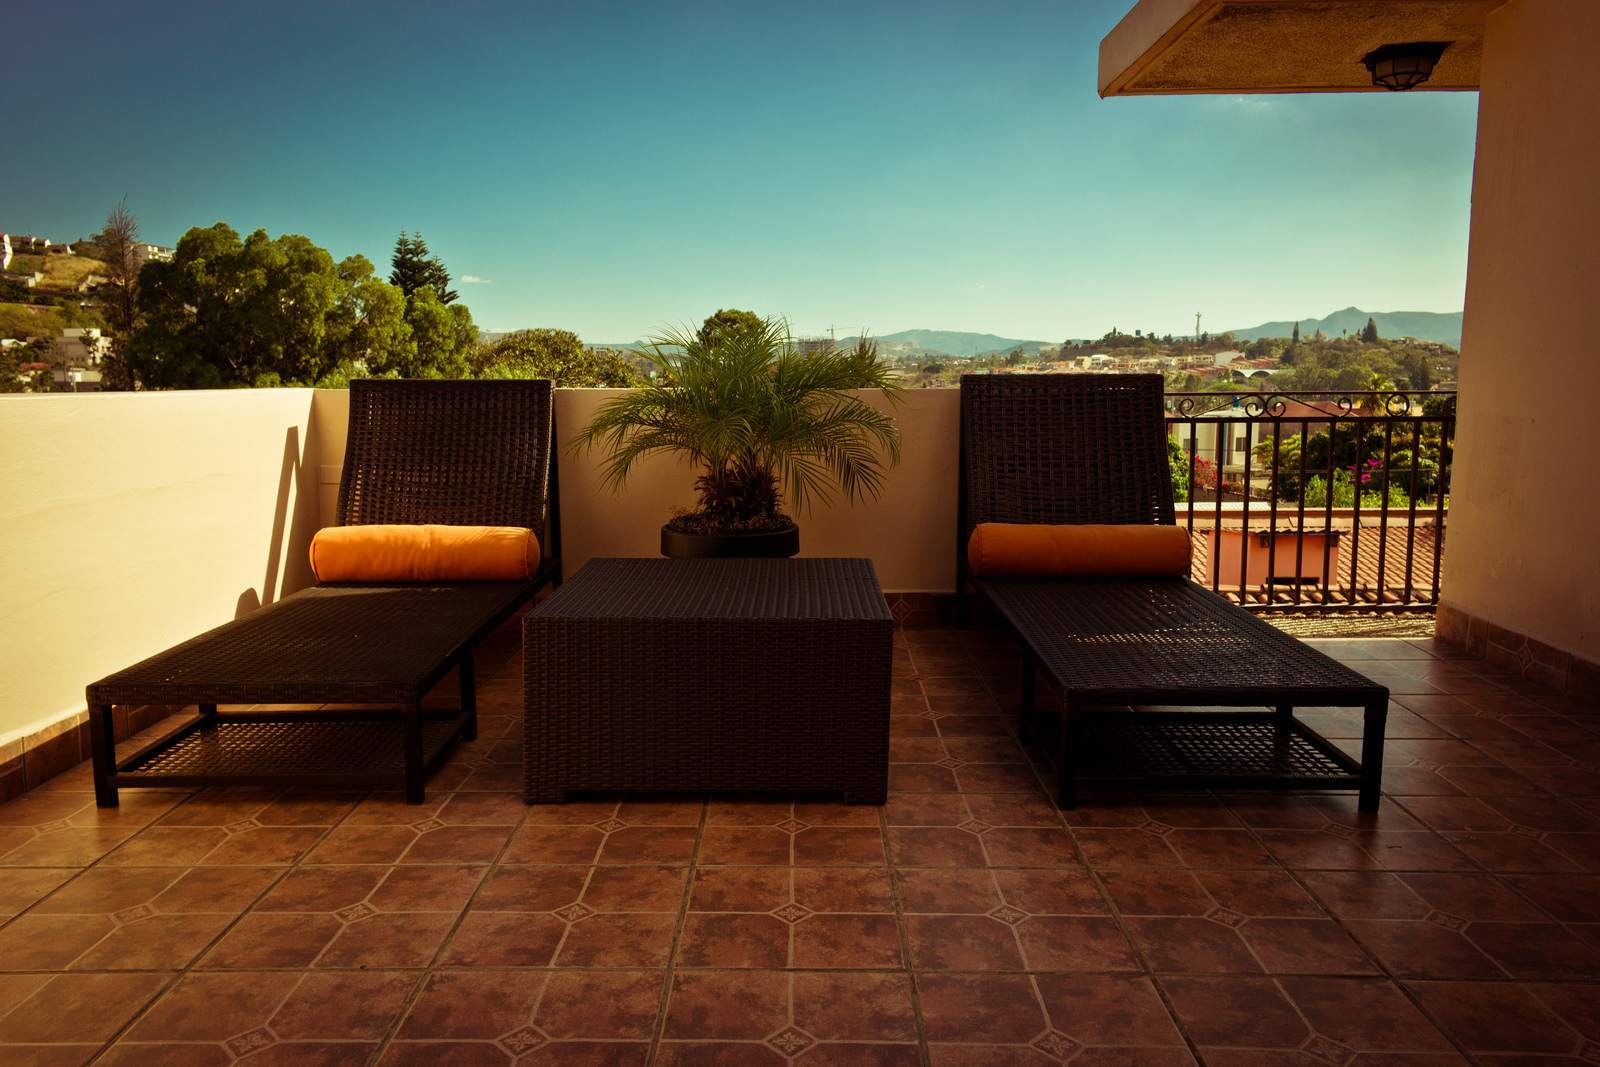 Best List of Luxury Hotels in Tegucigalpa, Honduras - Himuya Inn Hotel